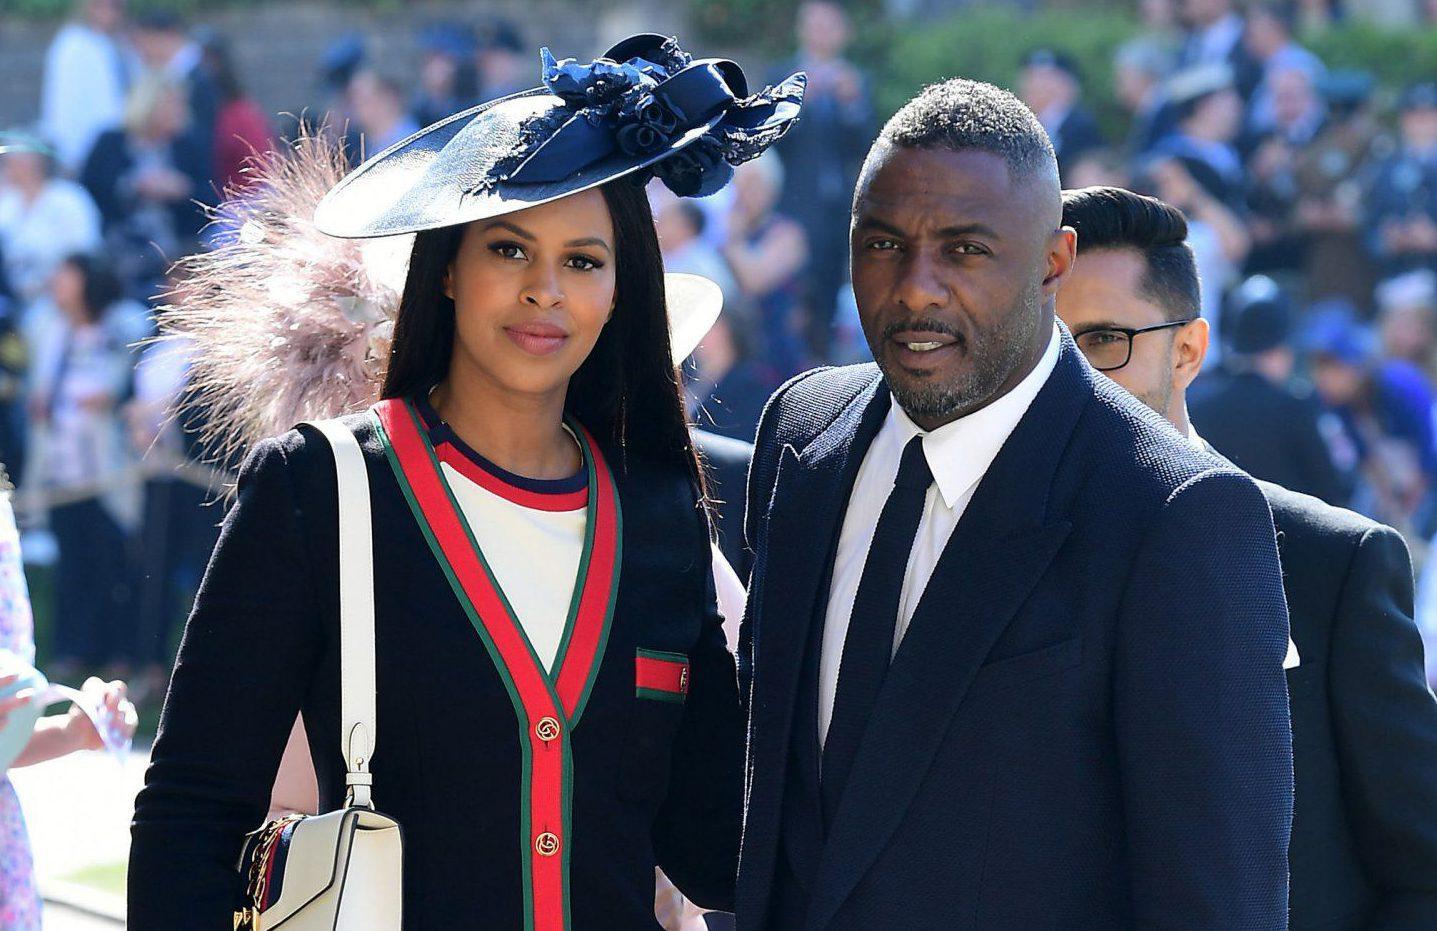 Idris Elba arrives at royal wedding with fiancee Sabrina Dhowre and Oprah Winfrey